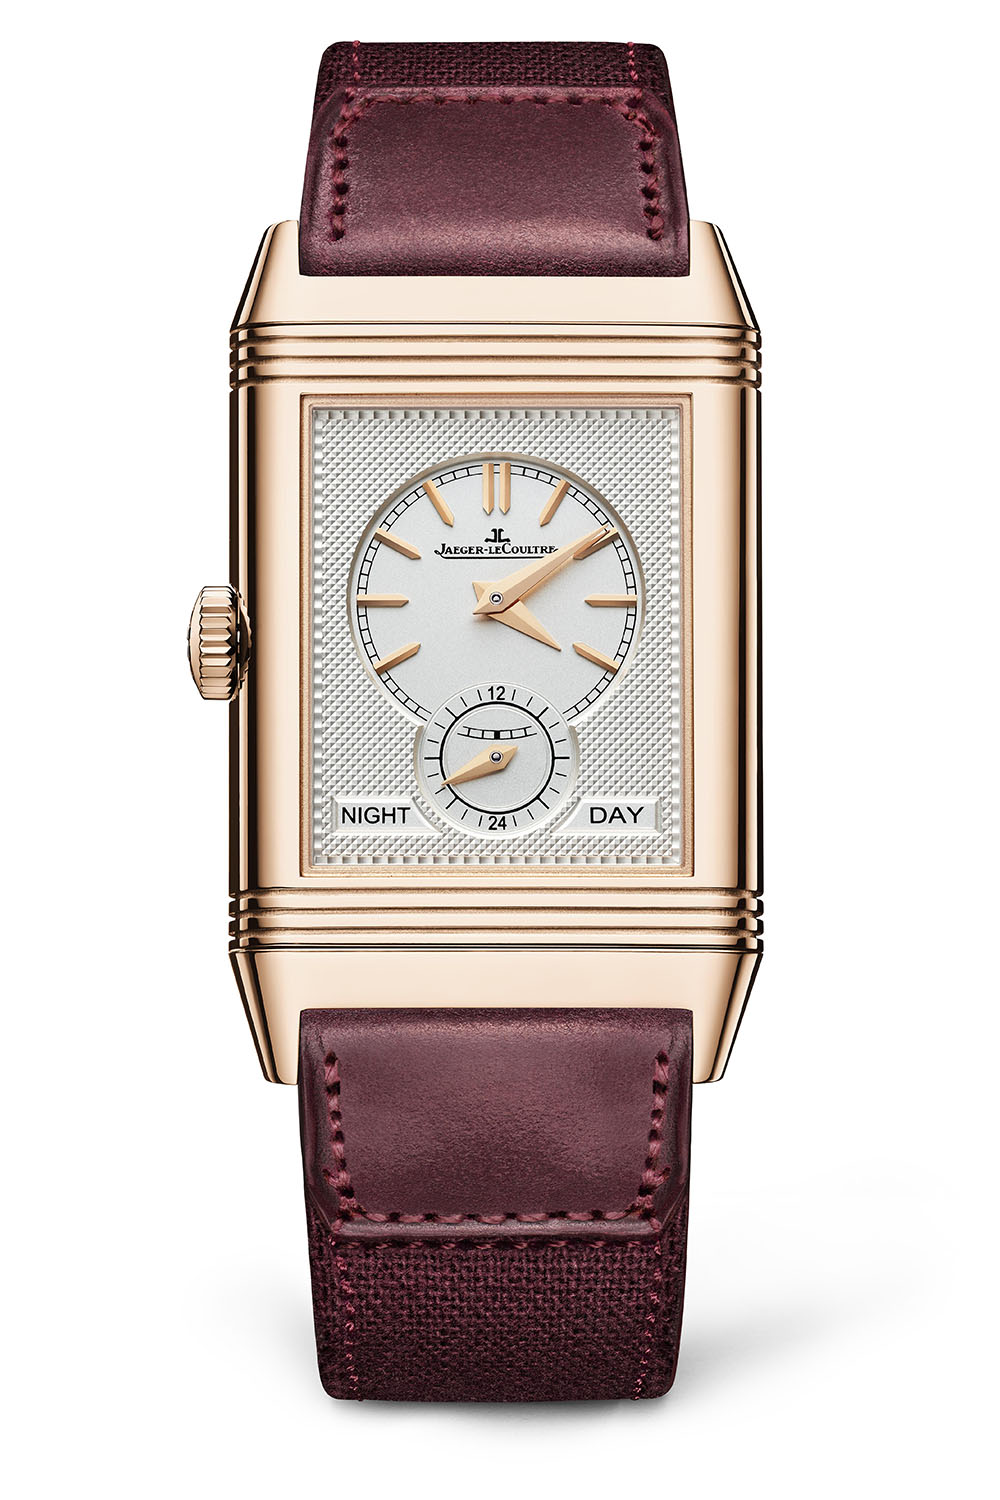 Jaeger LeCoultre Reverso Tribute DuoFace Fagliano Burgundy Limited 18